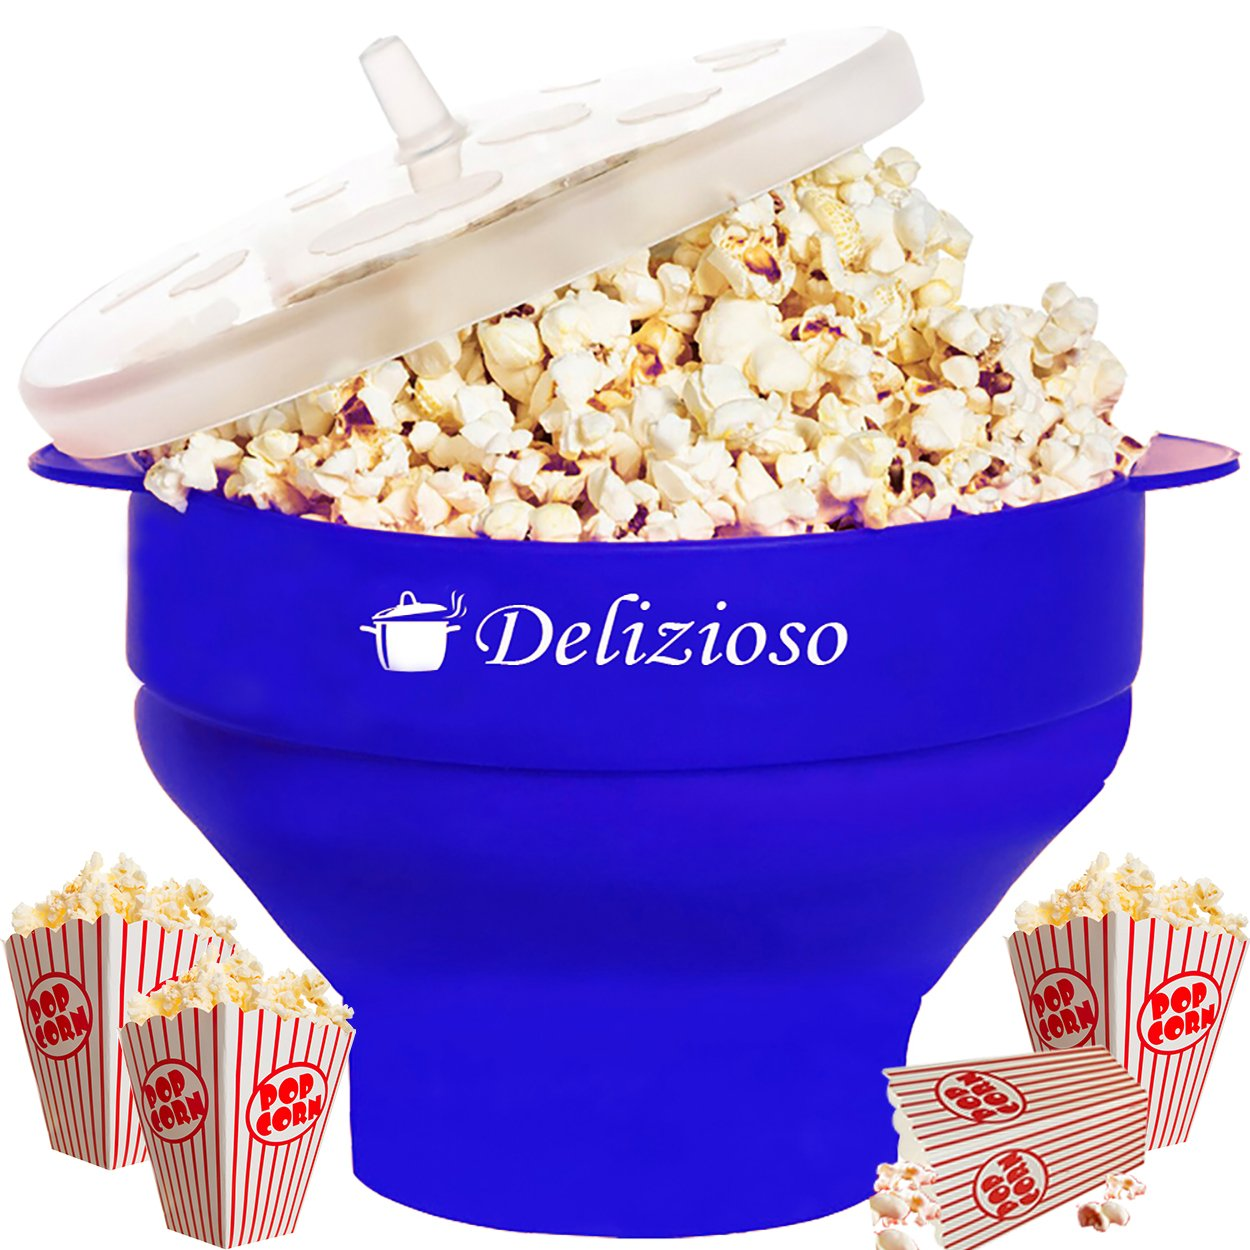 The Original Delizioso Microwave Popcorn Popper/Big Popcorn Maker, No Oil Needed, Silicon Collapsible Bowl With Silicon Lid 7.8 X 4.3 X 5.7 Inches, BPA and PVC Free + 2 Gifts (Blue)